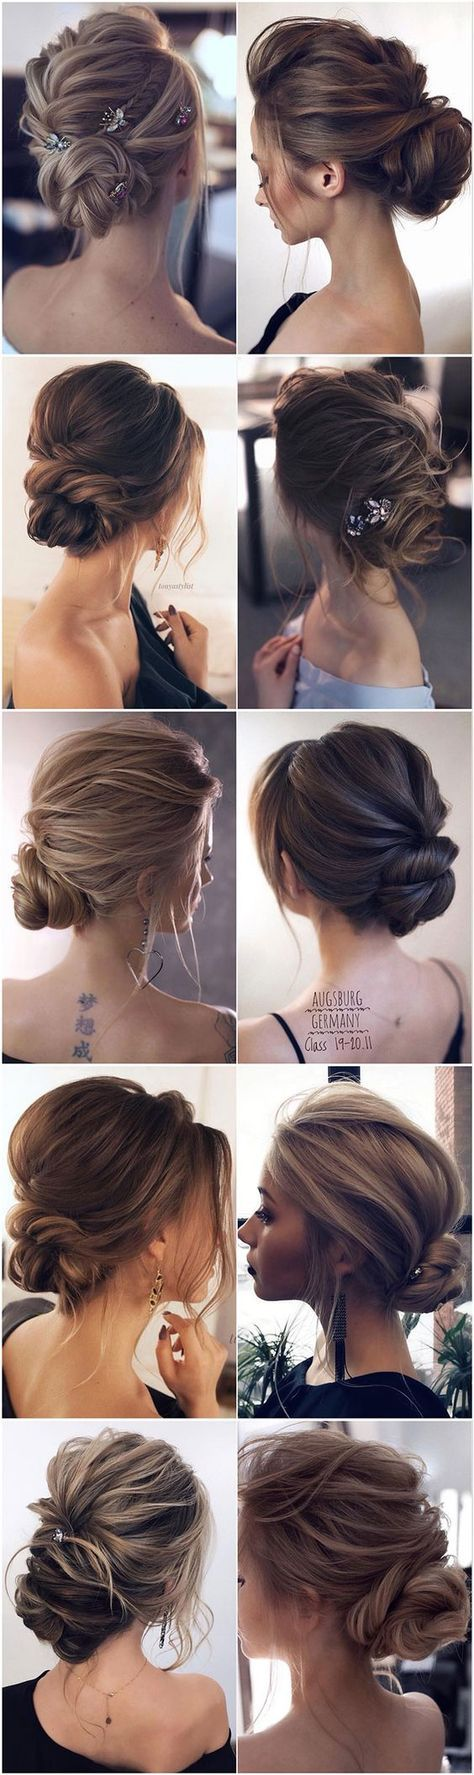 28 ideas hairstyles for medium length hair half up formal